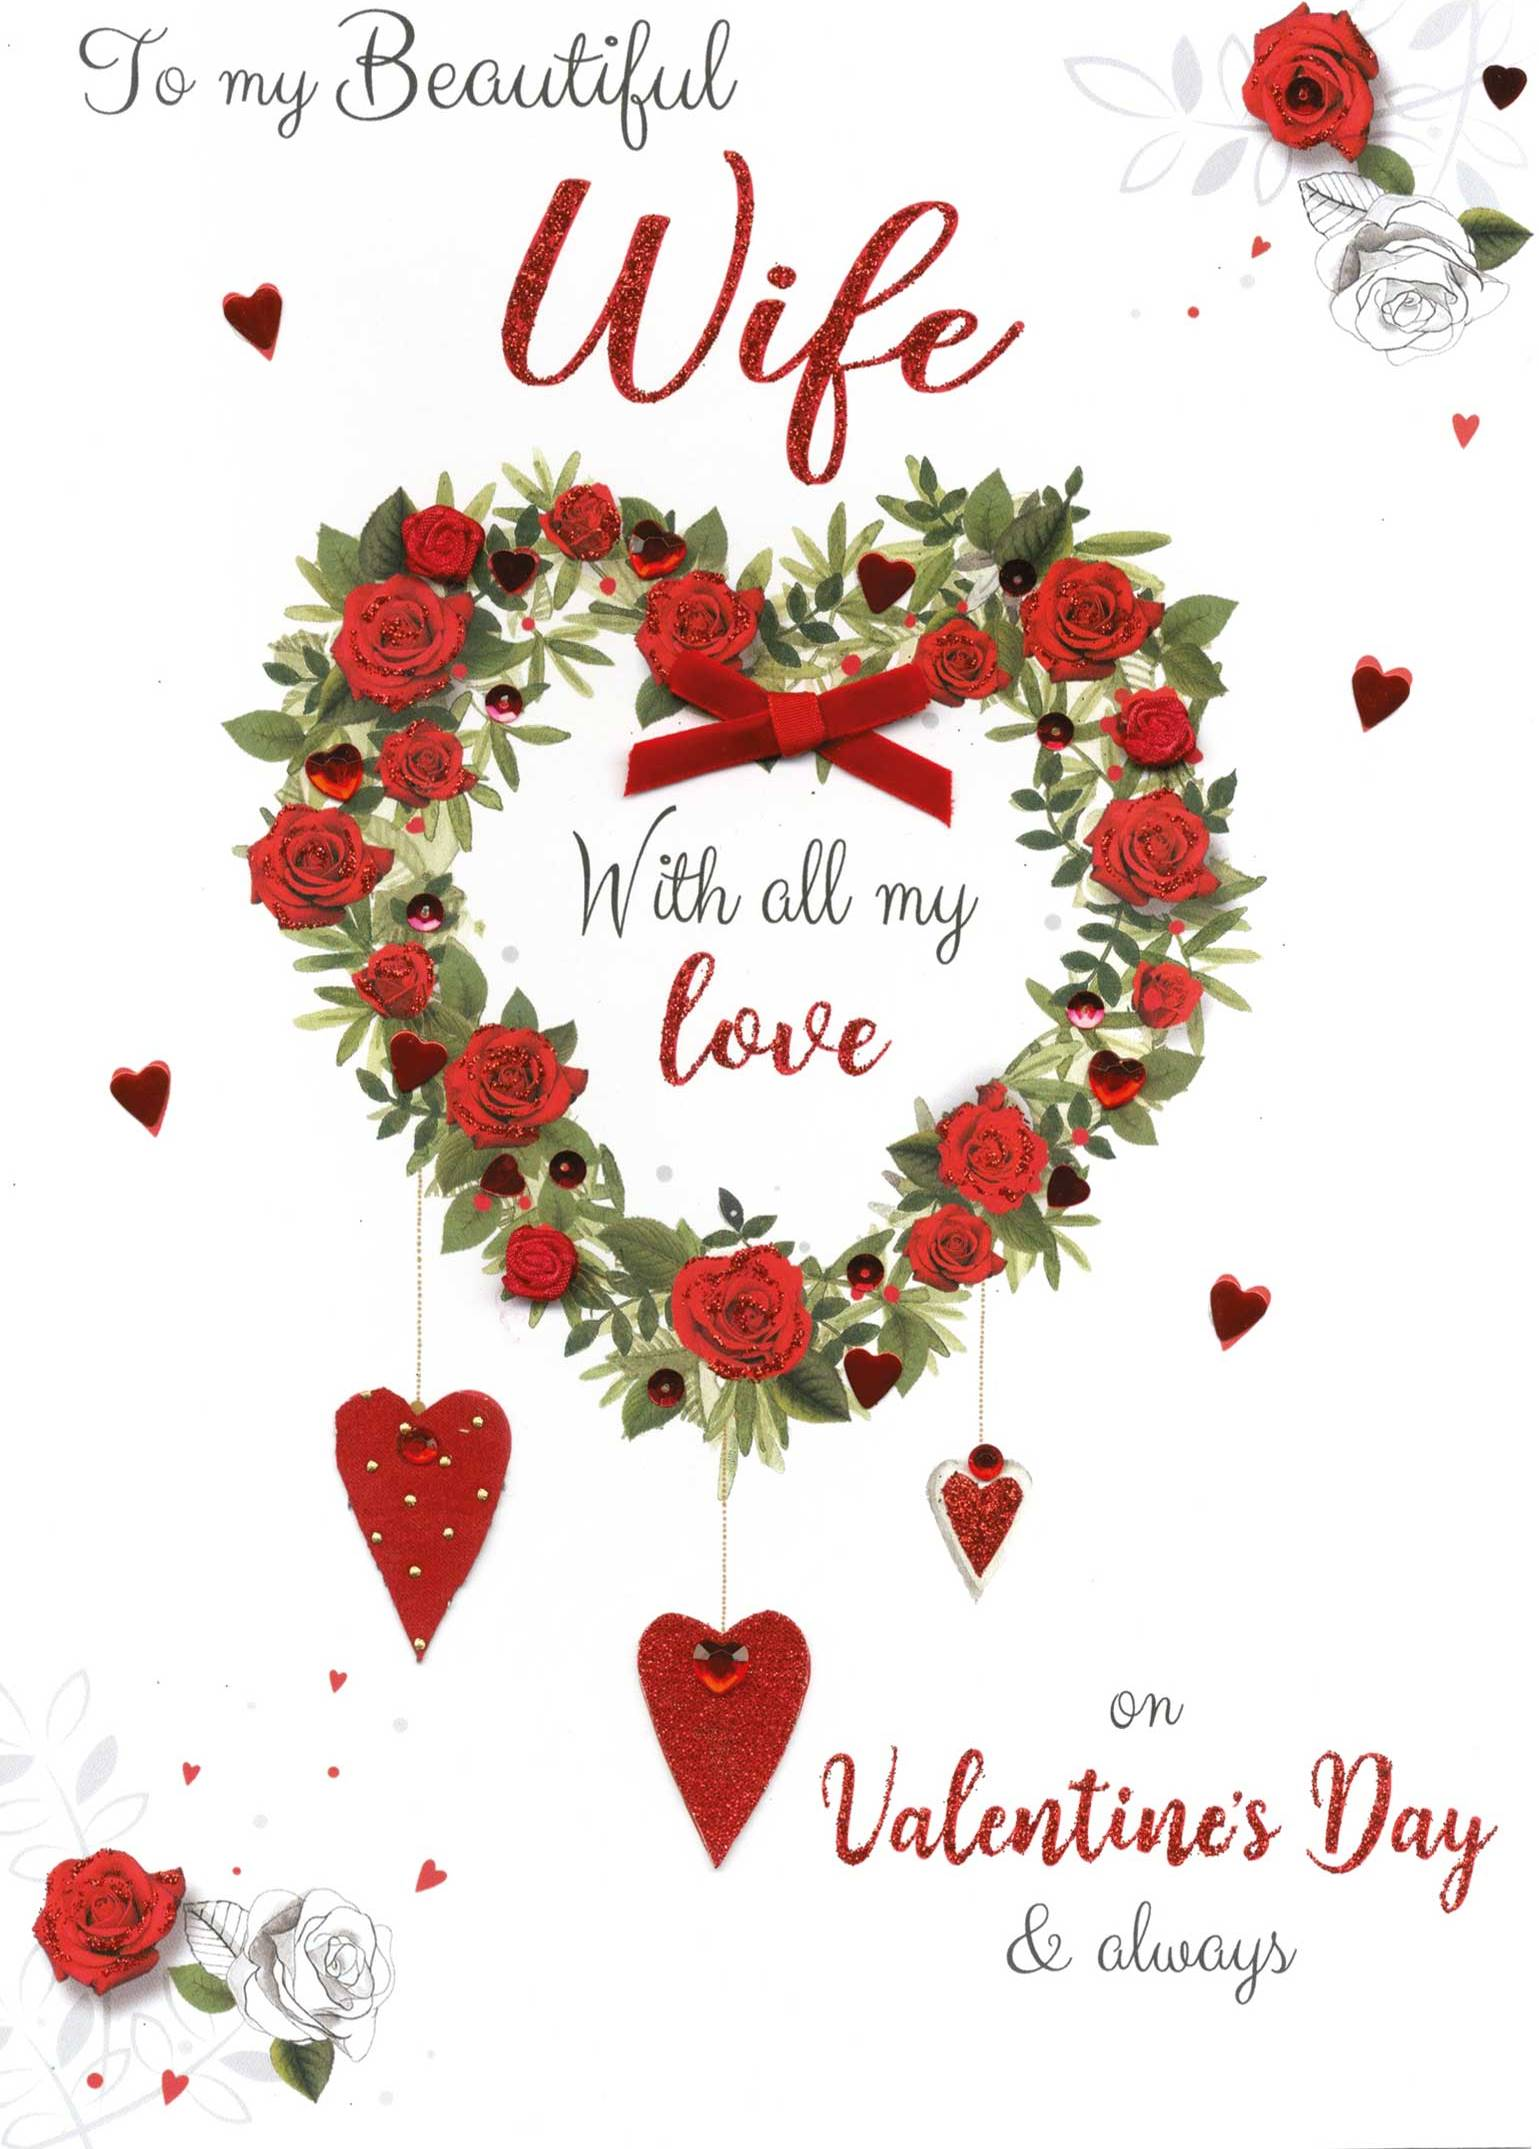 to my beautiful wife embellished valentine's day greeting